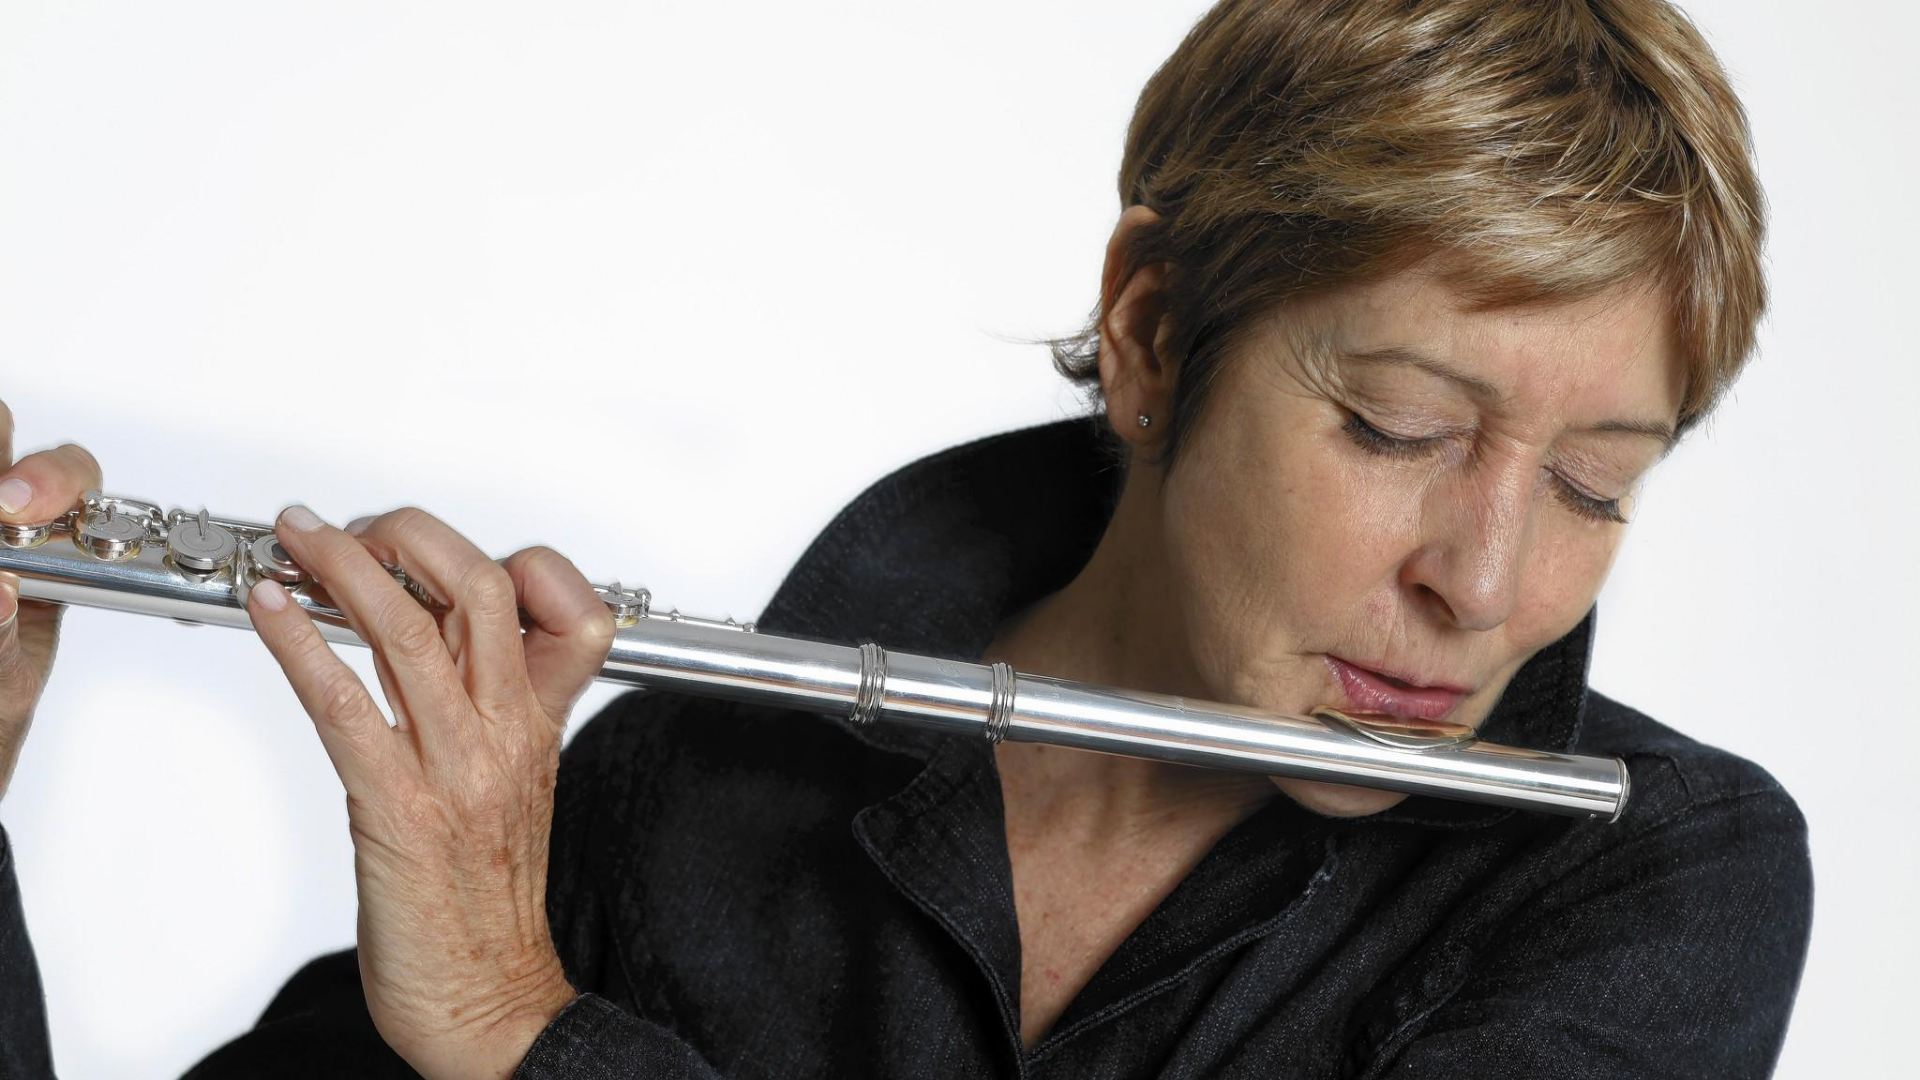 Ali_Ryerson_playing_flute_edited.jpg